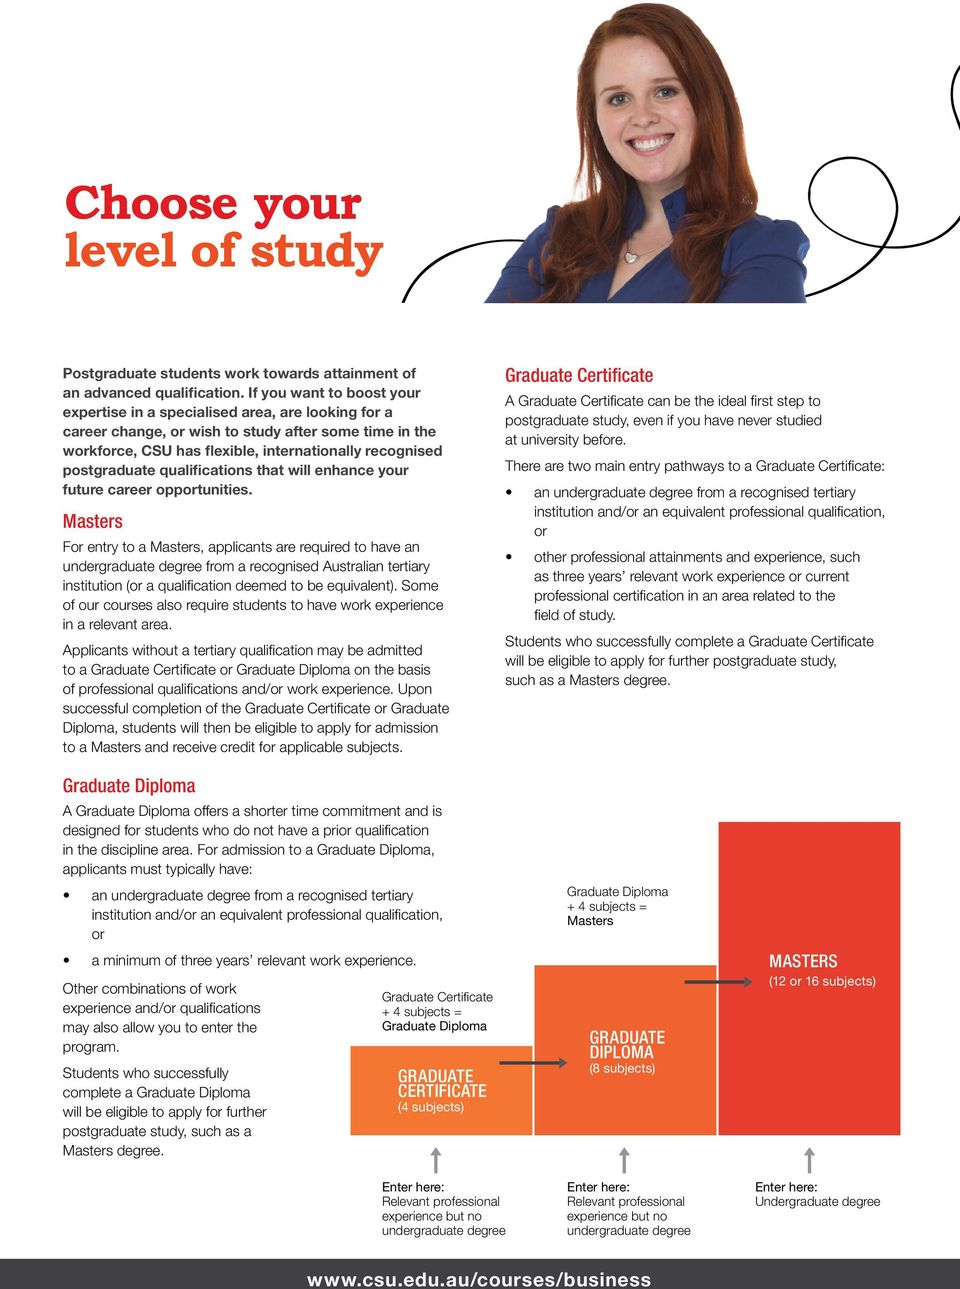 postgraduate qualifications that will enhance your future career opportunities.